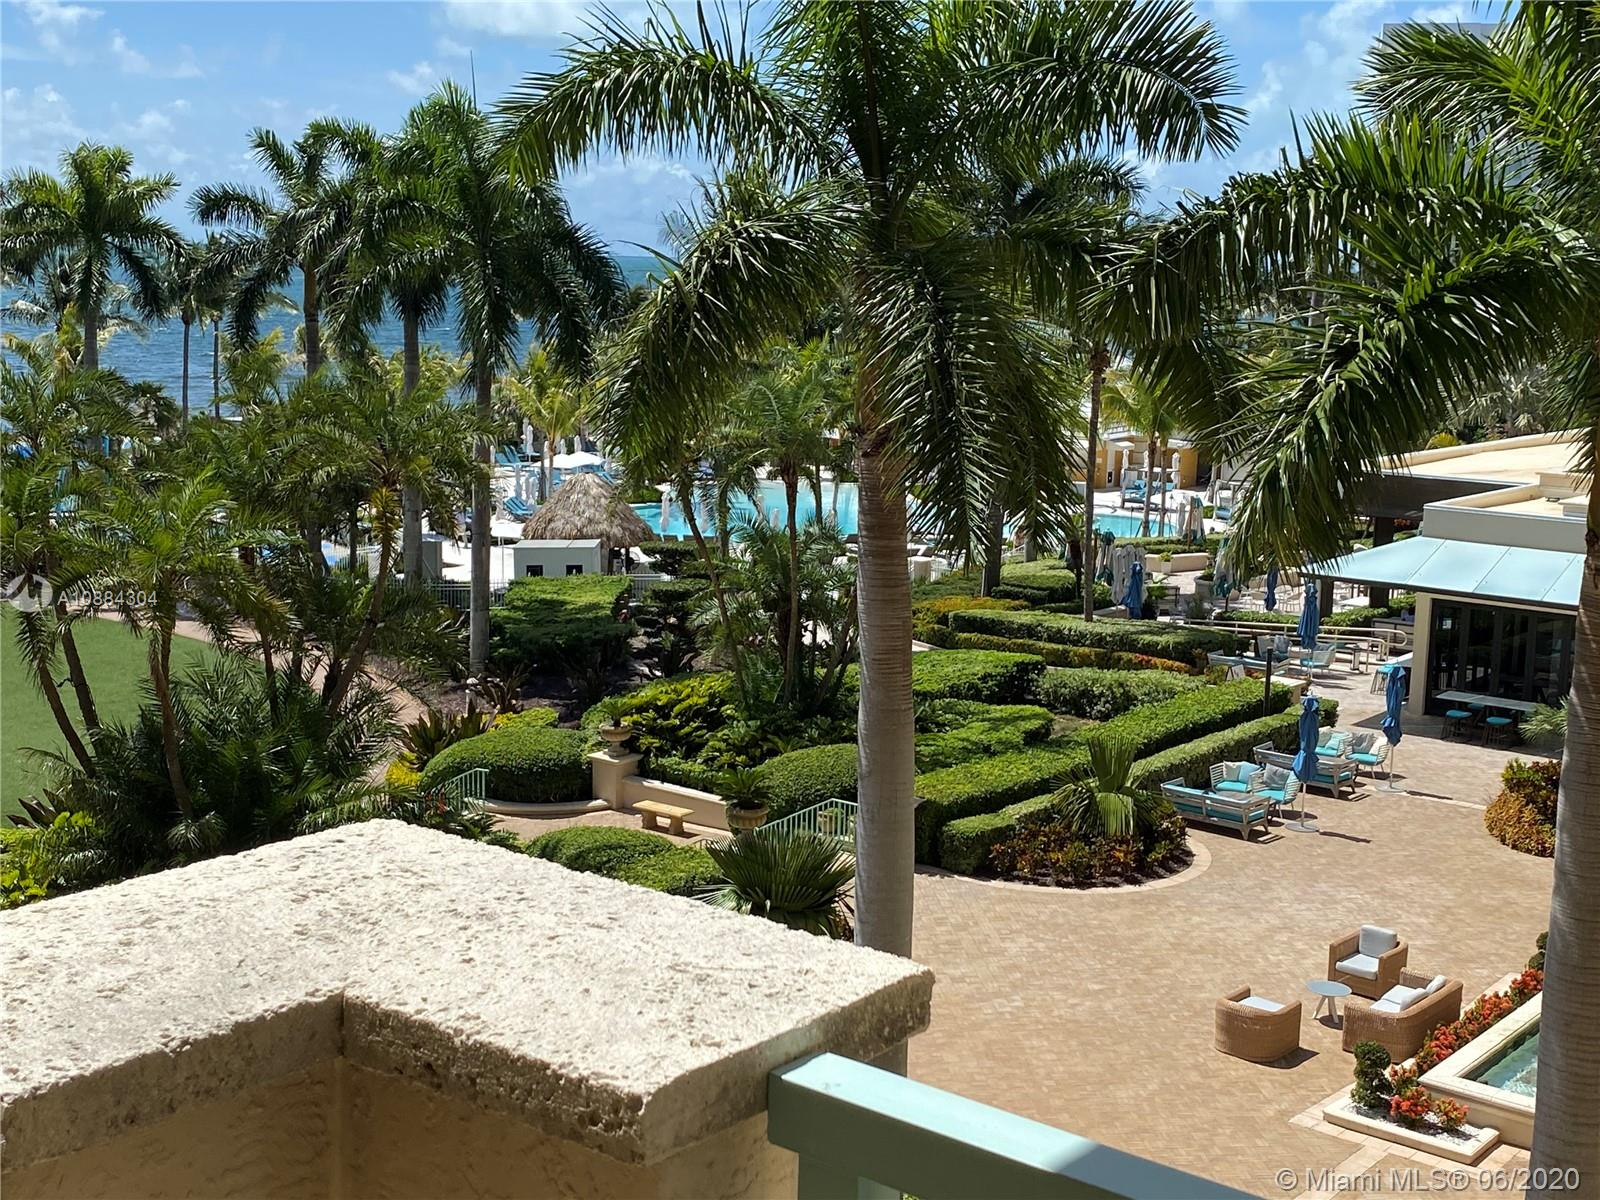 SPACIOUS 1-BED UNIT at The Ritz-Carlton in Key Biscayne.Recent multi-million dollar renovation, with new pool, beach cabanas, kids water park and much more.Amenities include 3 restaurants with views to the ocean, concierge service, tennis and paddle tennis, valet, fitness center, spa, beach service and more. Enjoy the first-class facilities and amenities whilst having the ability to legally rent the unit daily or be part of the Ritz Hotel Program.